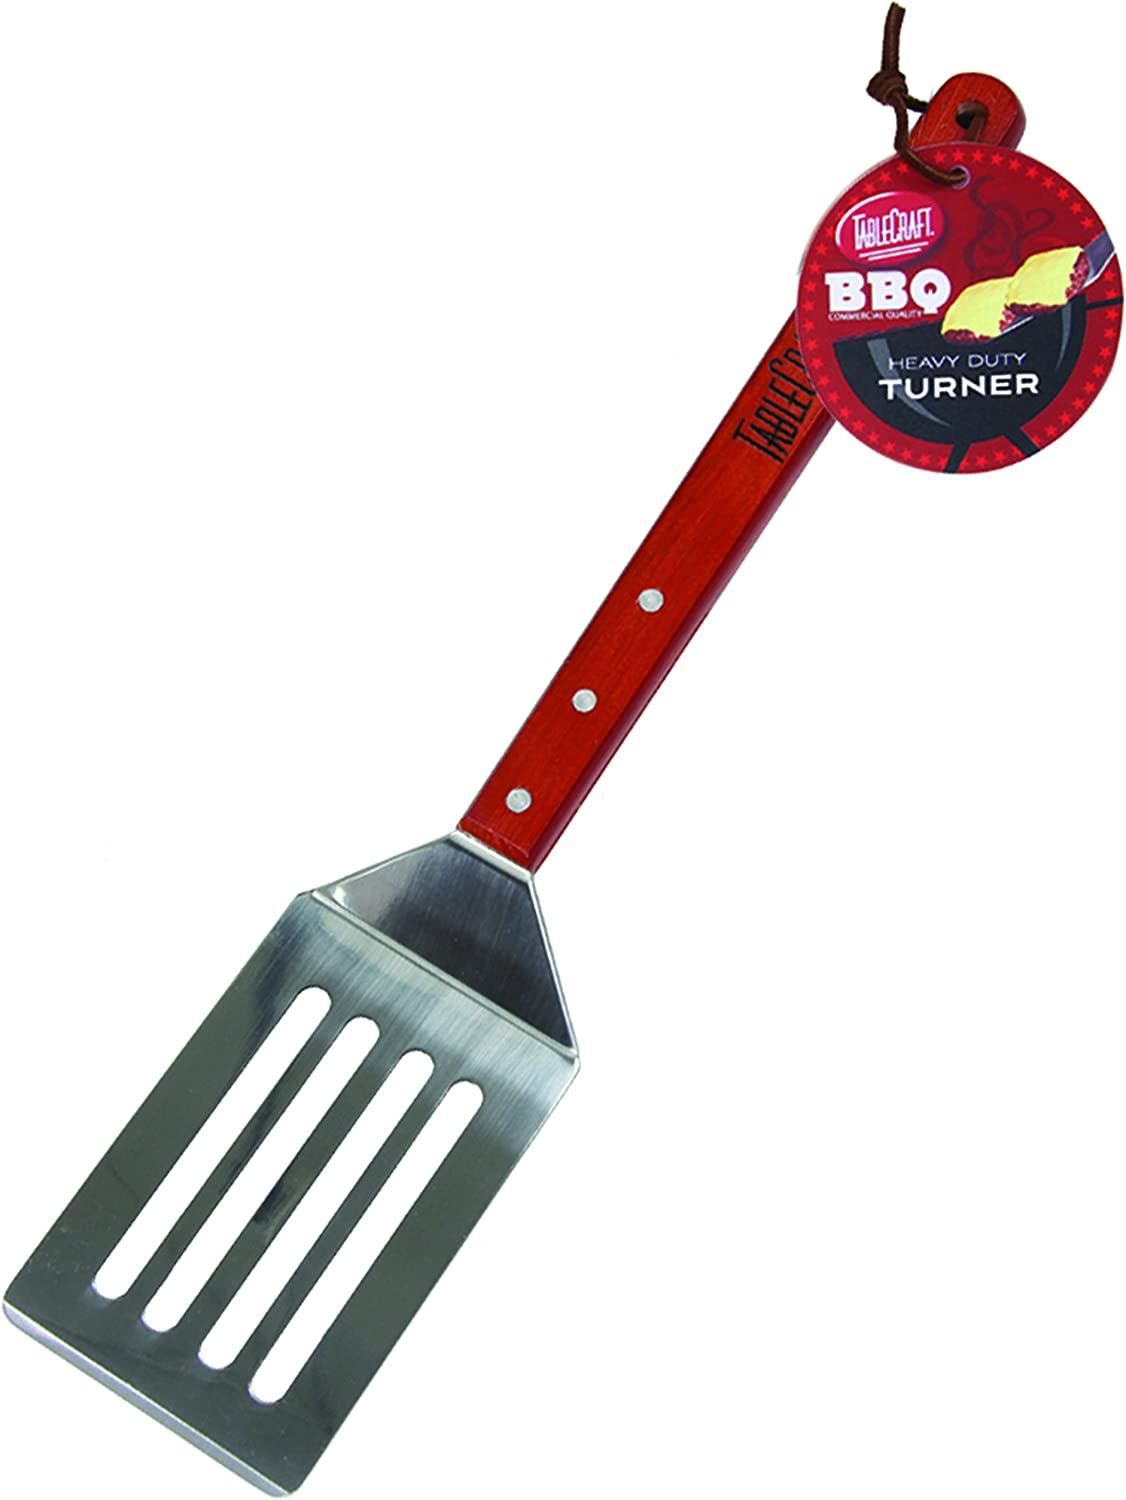 19-Inch Silver TableCraft BBQS BBQ Stainless Steel Long Handled Turner with Wood Handle